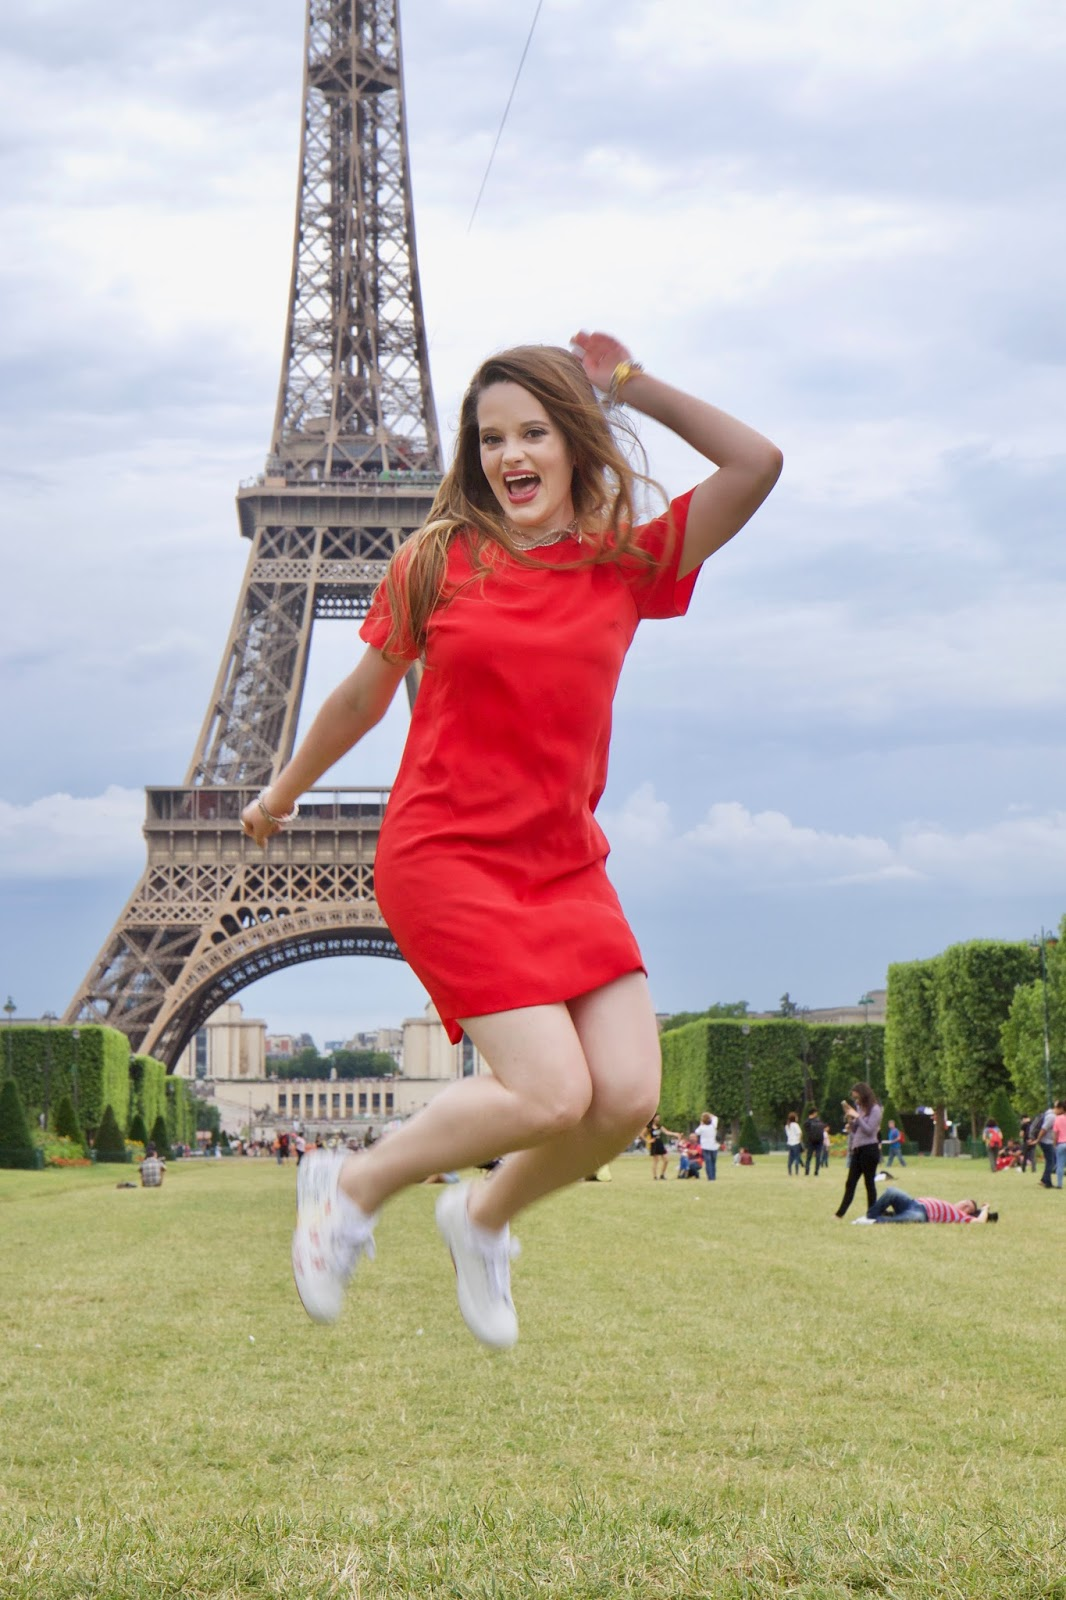 Fashion blogger Kathleen Harper in front of the Eiffel Tower in Paris France